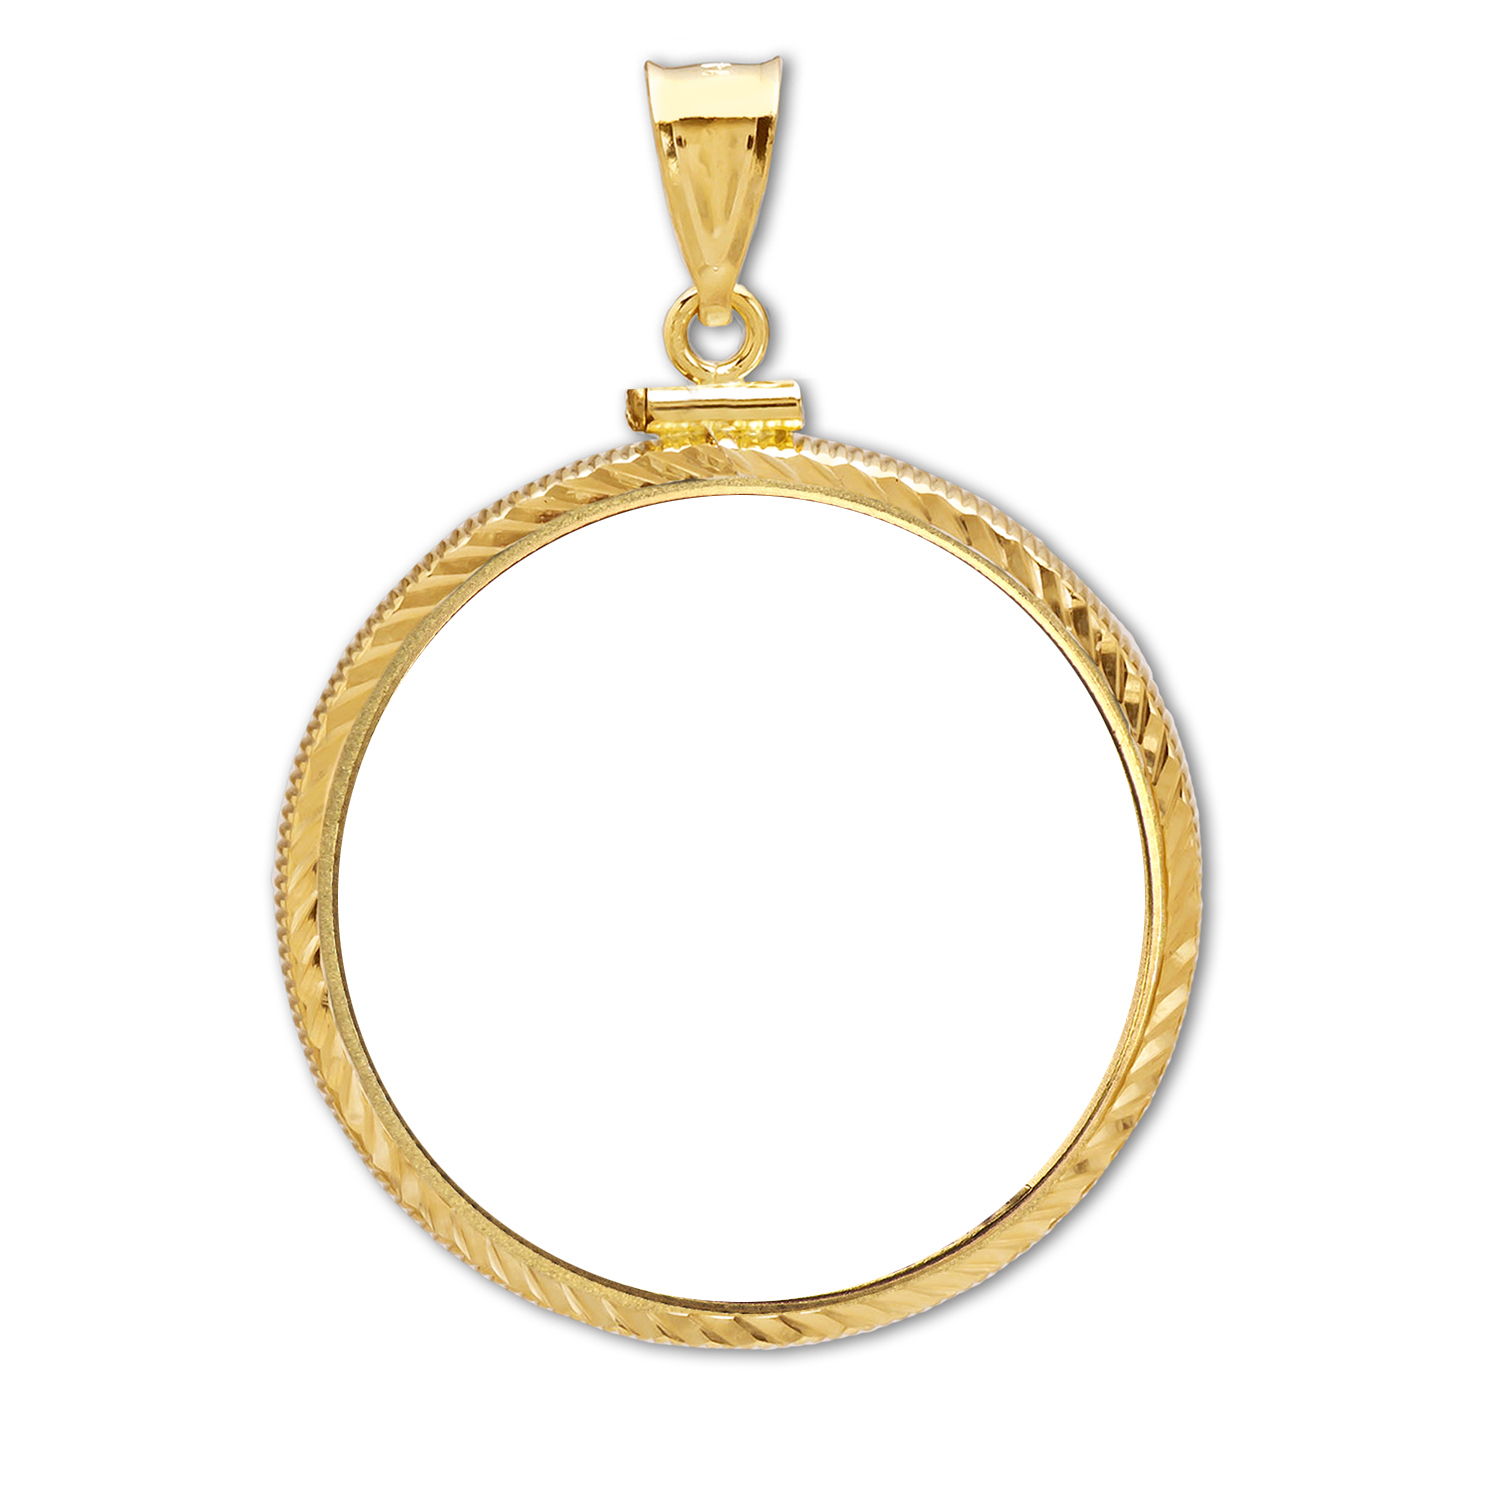 14K Gold Screw-Top Diamond-Cut Coin Bezel - 14 mm